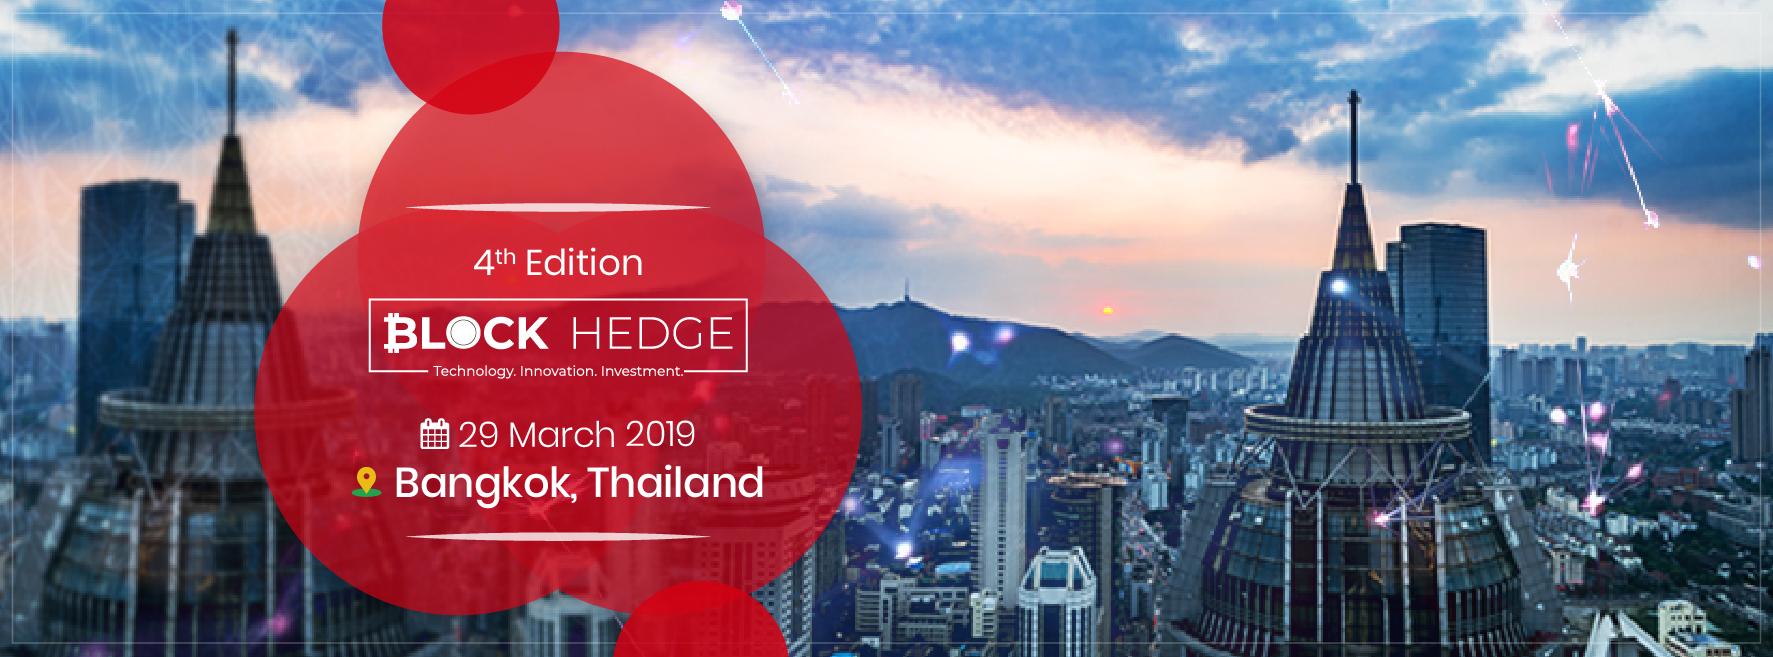 The 2nd Annual Conference of Block Hedge Business 2019 At Bangkok Is Set to Create Ripples in The Blockchain World organized by Block Hedge